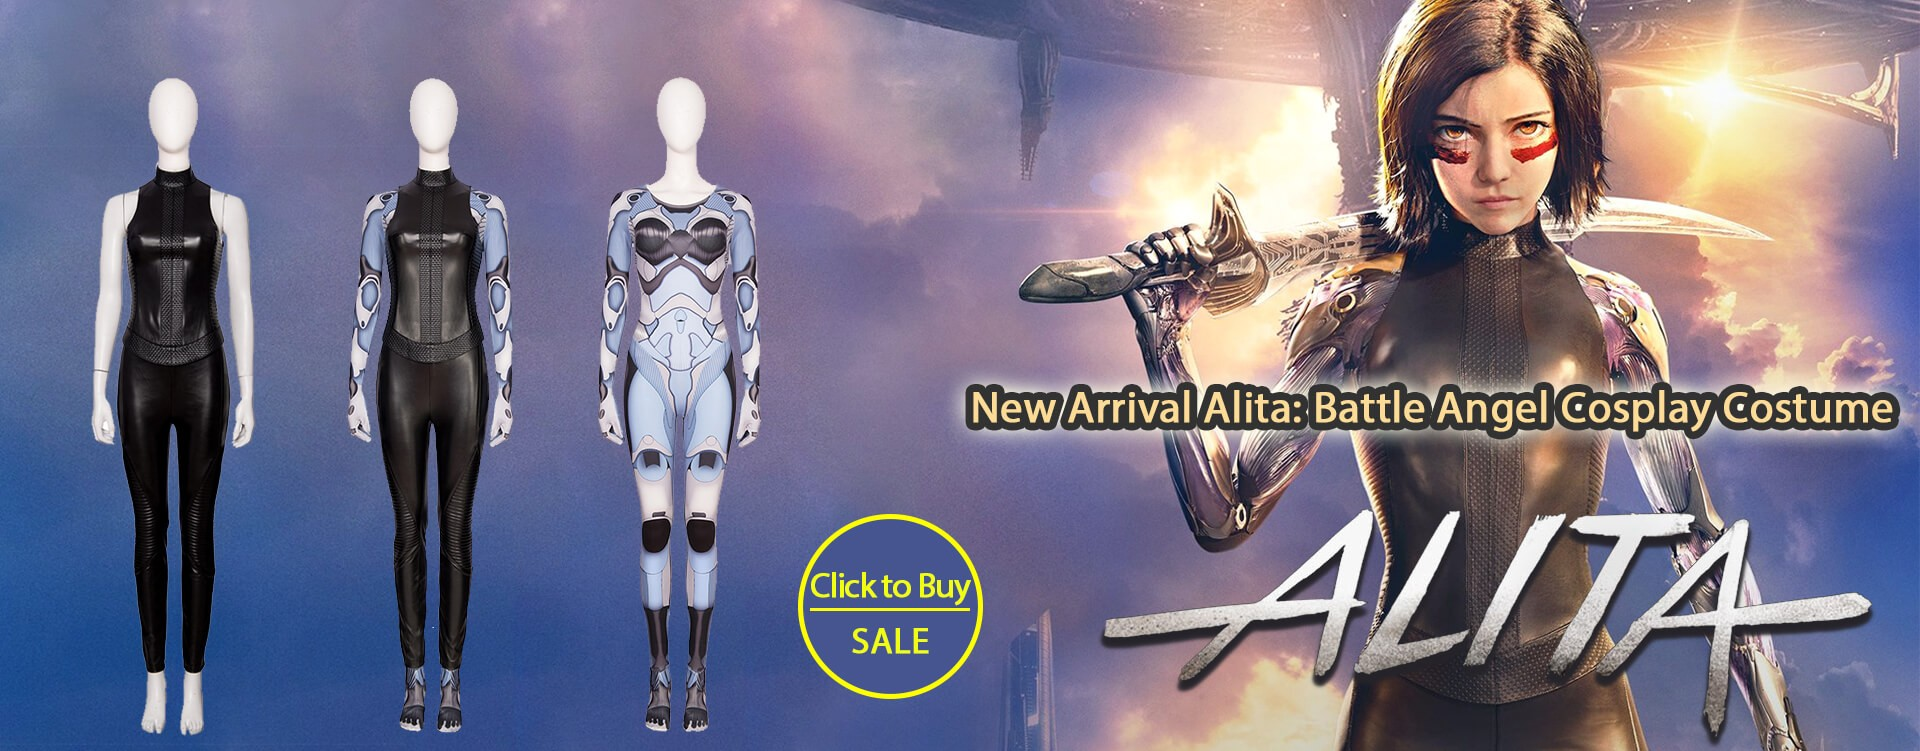 New Arrival Alita: Battle Angel Cosplay Costume